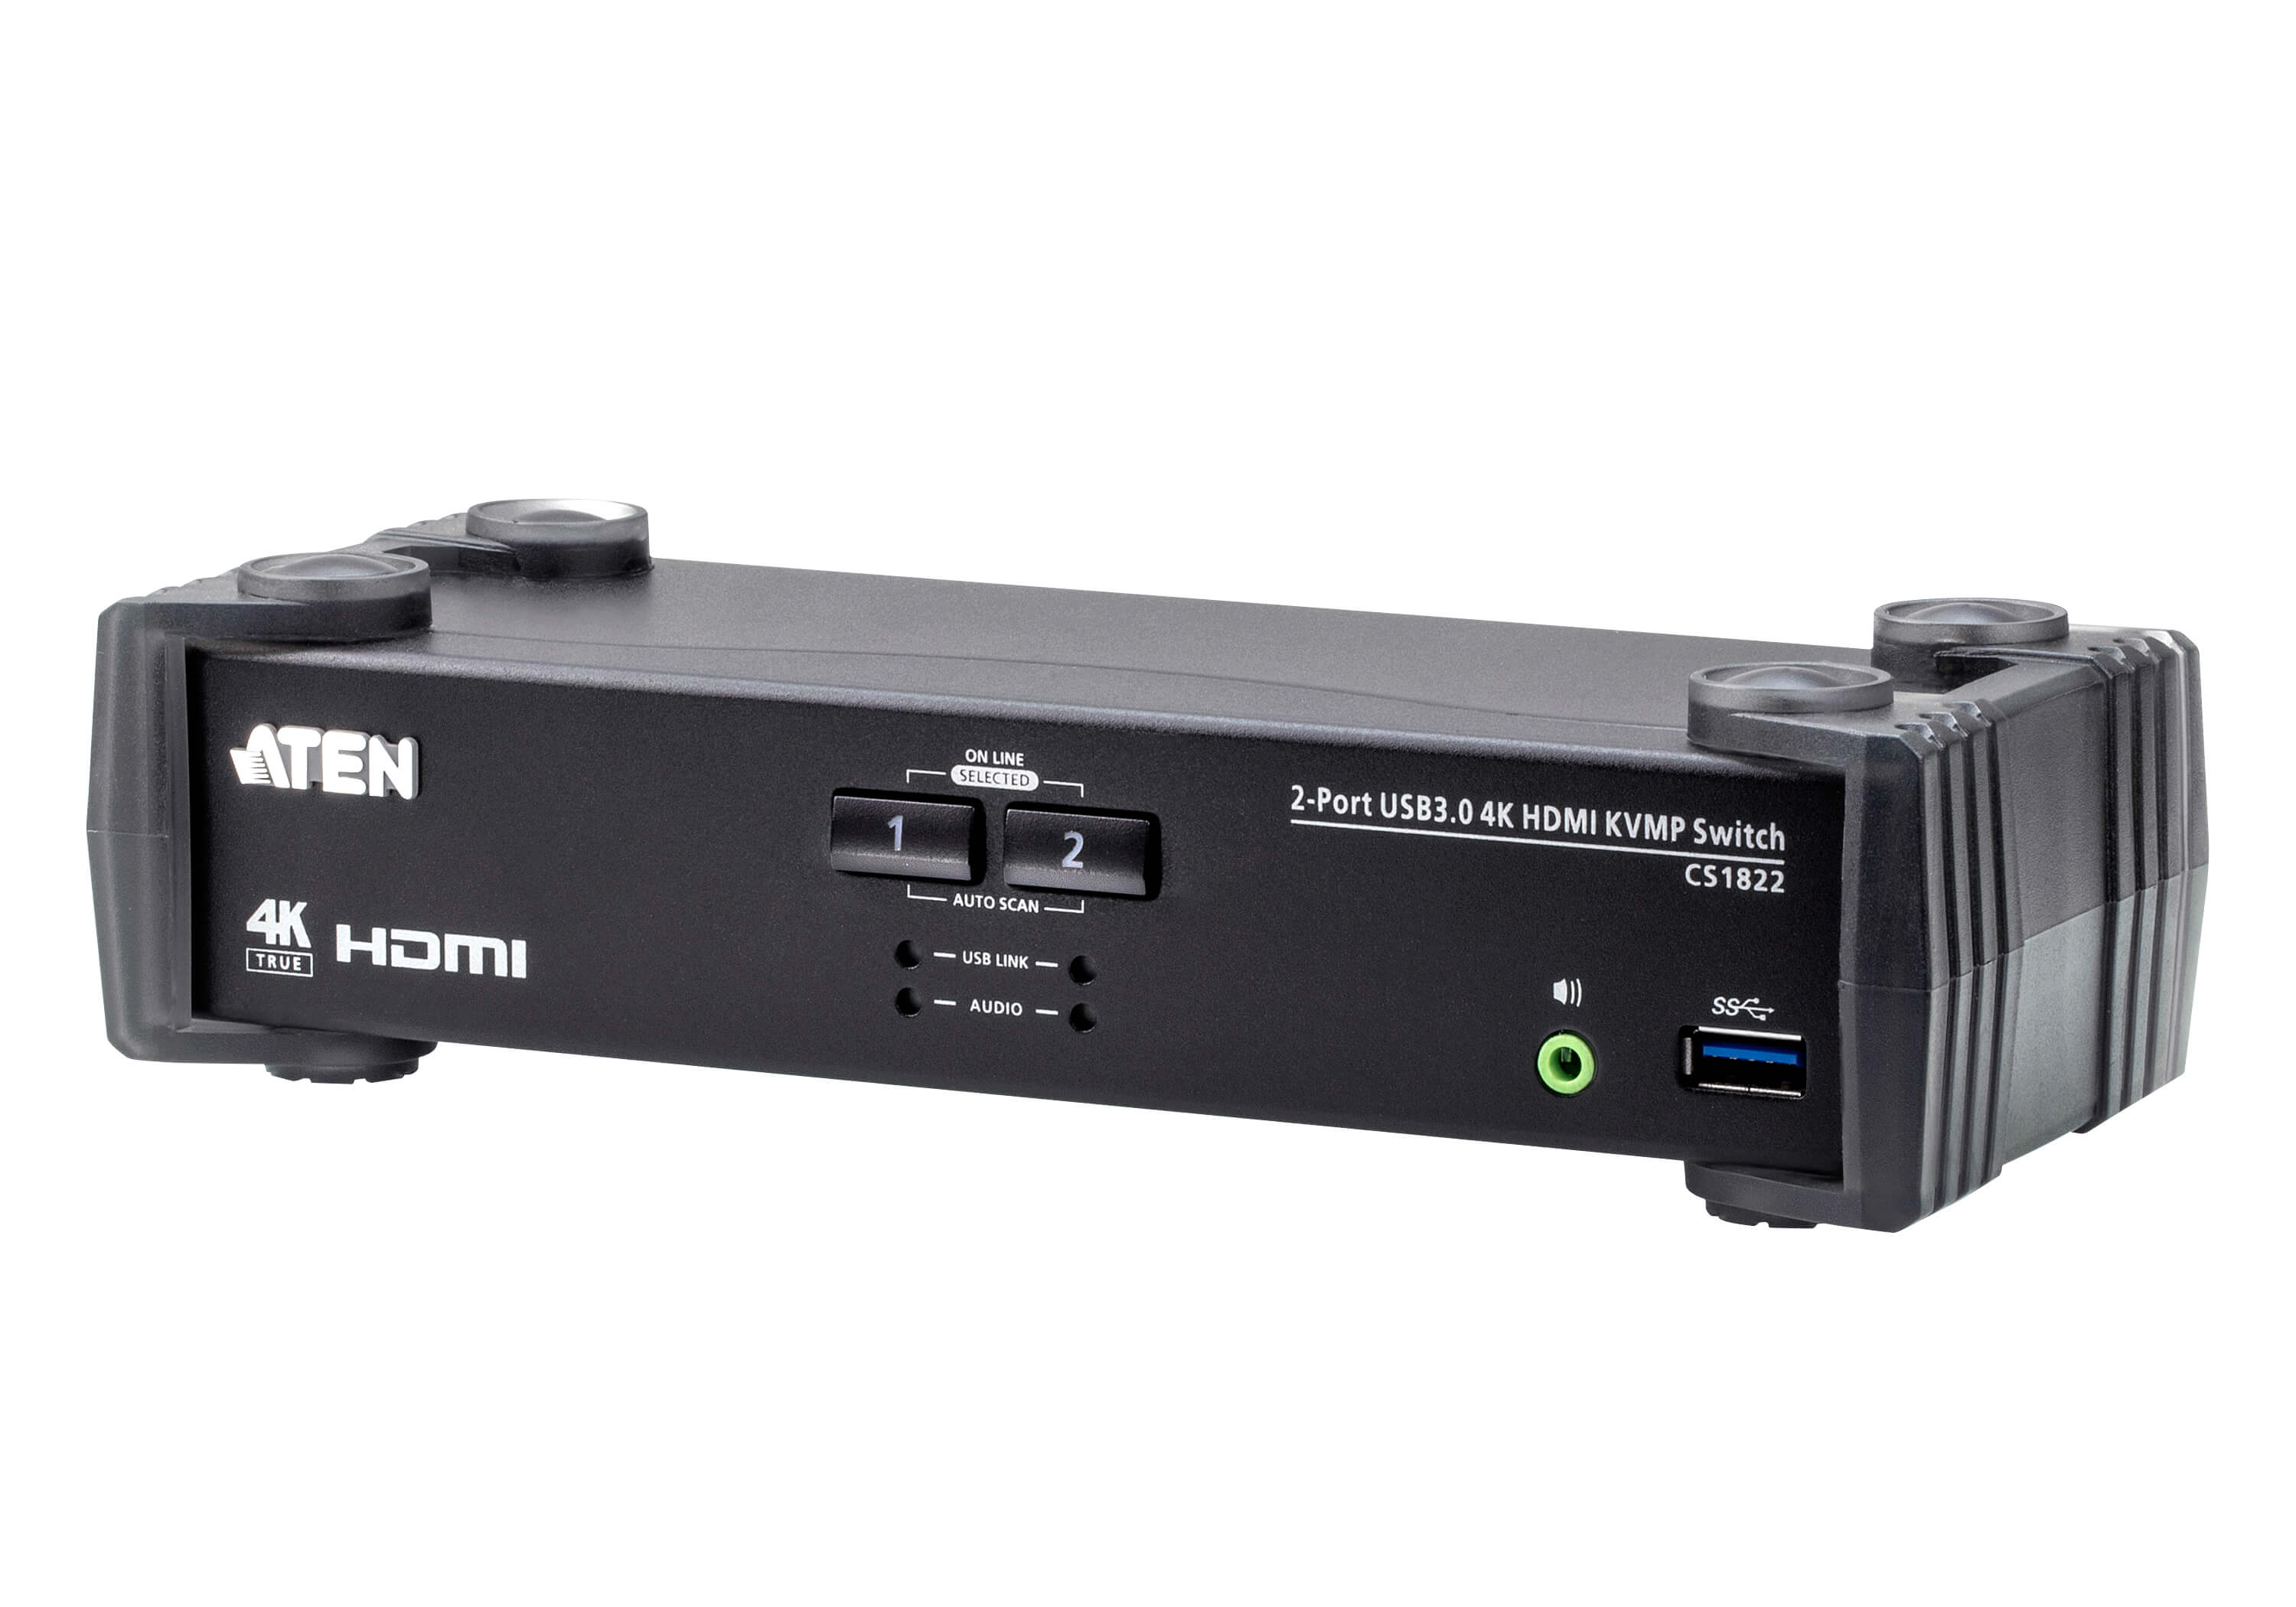 Aten 2 Port USB 3.0 4K HDMI KVMP Switch, Video DynaSync, support HDMI 2.0 4K@60Hz switching via RS-232, hotkeys, pushbuttons and mouse, 2 HDMI